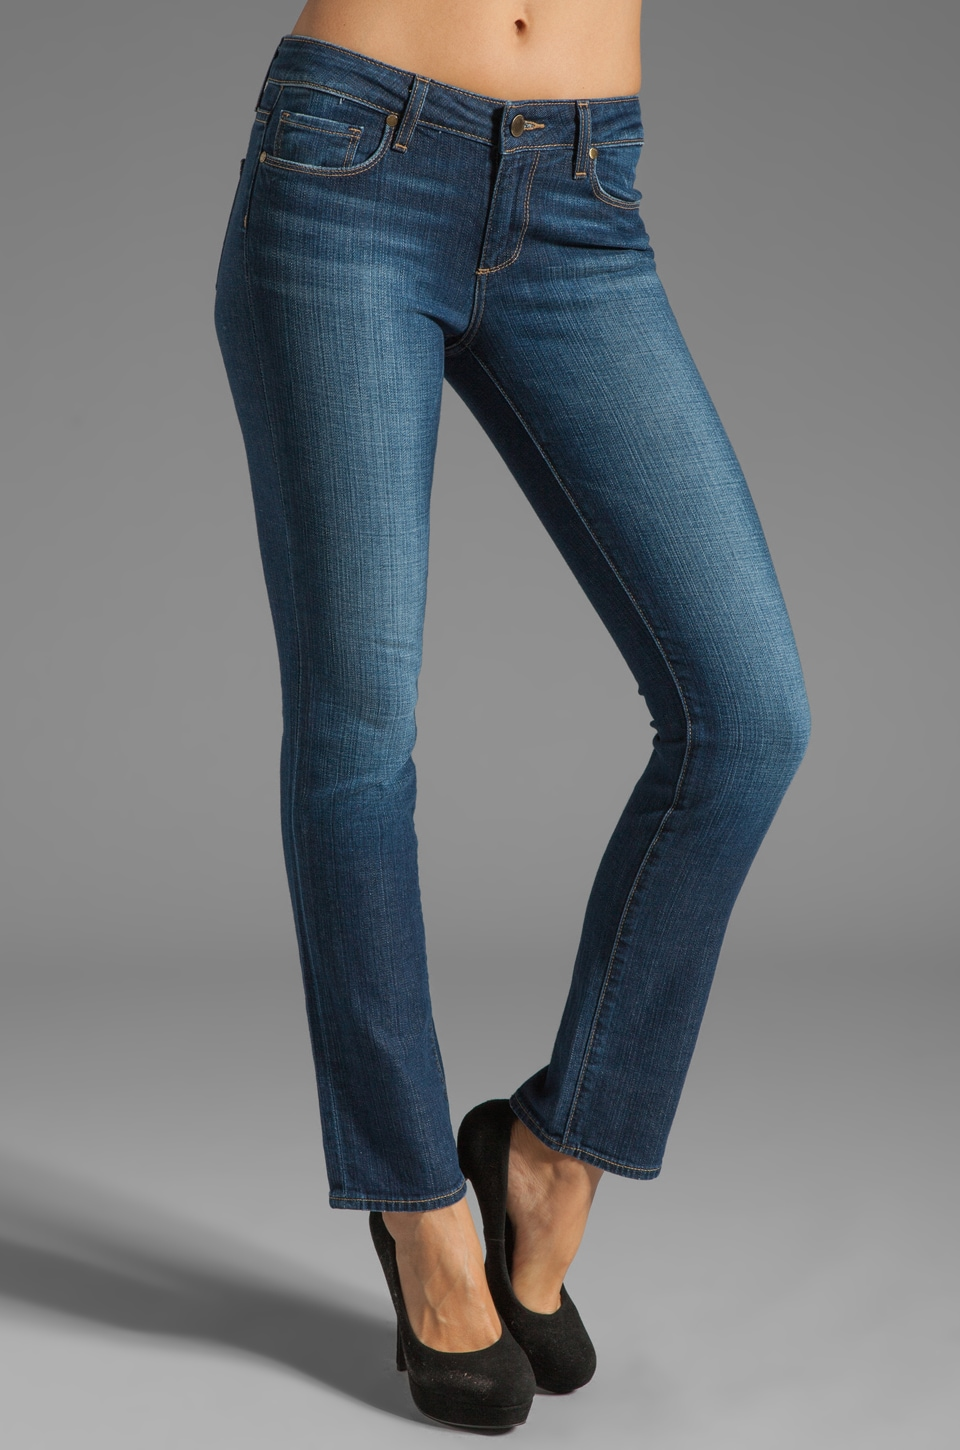 Paige Denim Kelsi Skyline Straight Leg in Carley